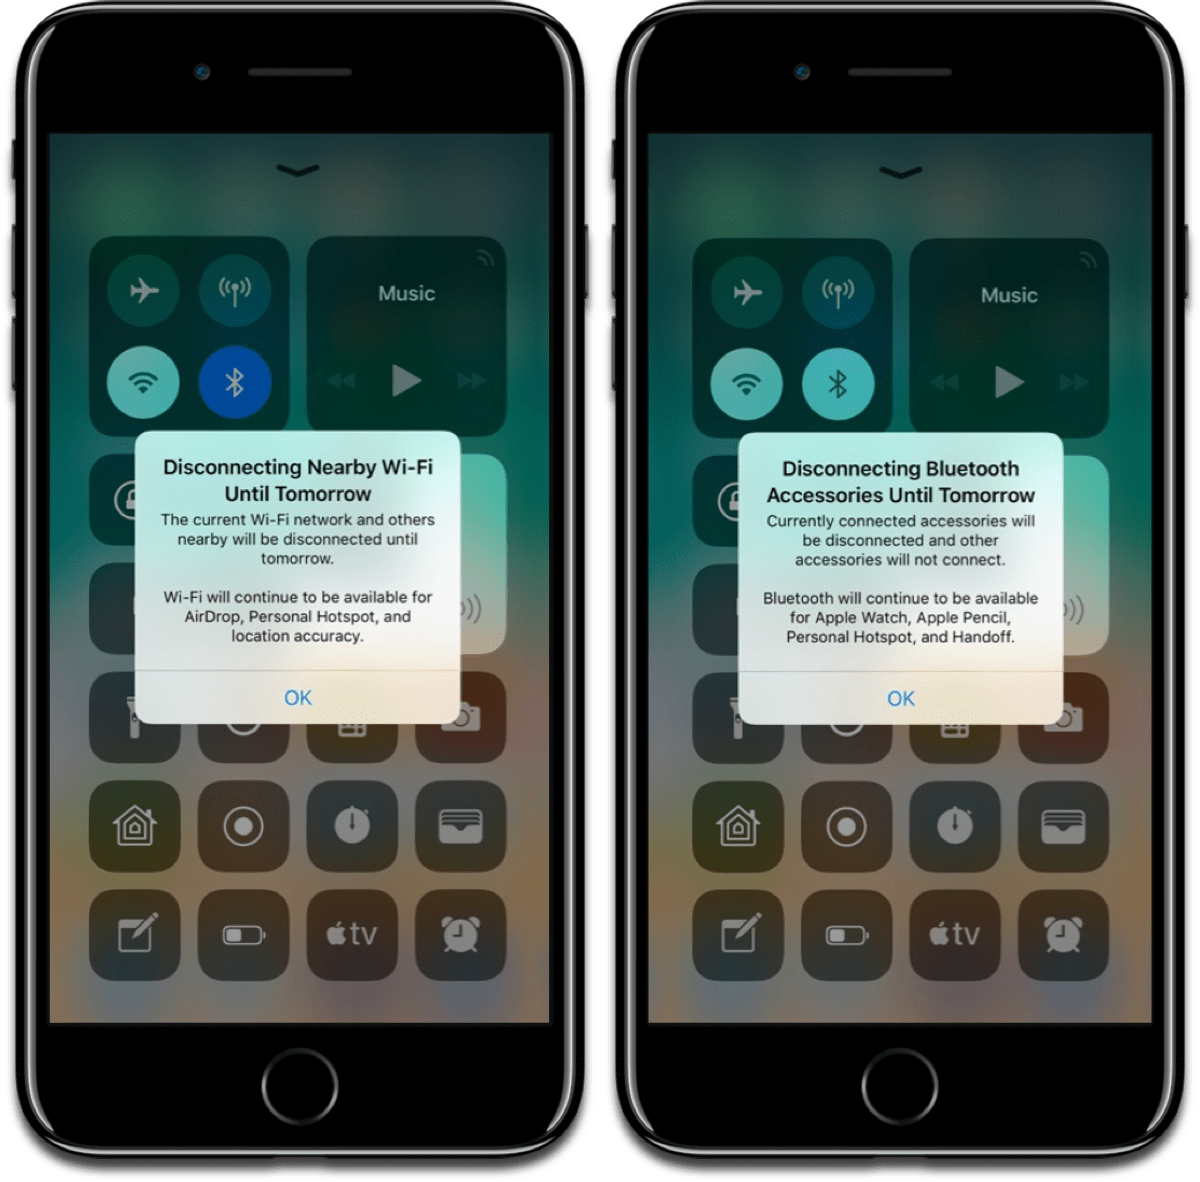 Screenshots of the new dialog box for the Bluetooth toggle and Wi-Fi toggle in Control Center.